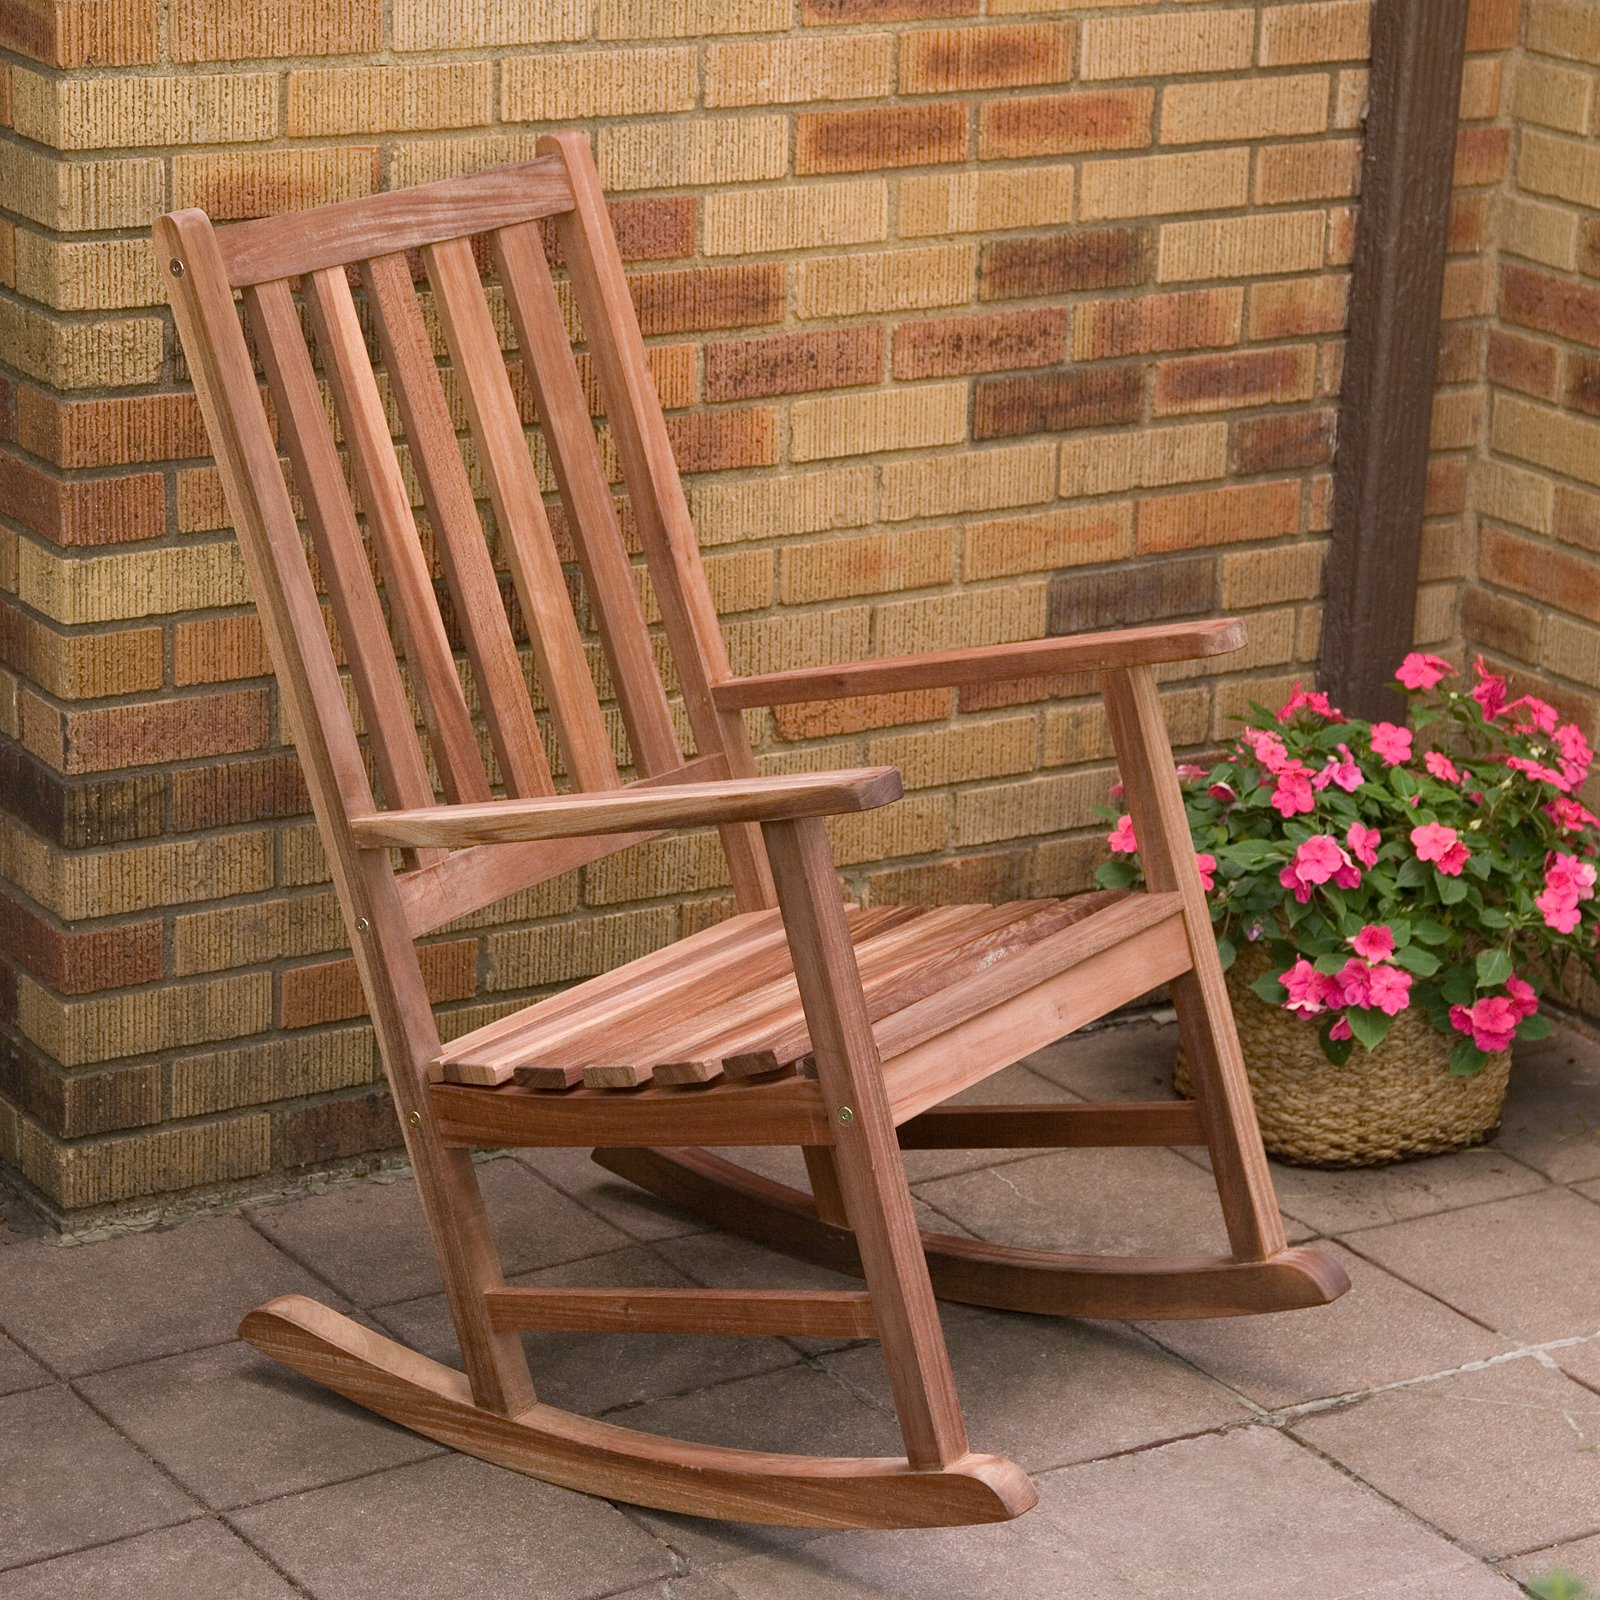 Outdoor Rocking Chairs Ideas For Patio Needs